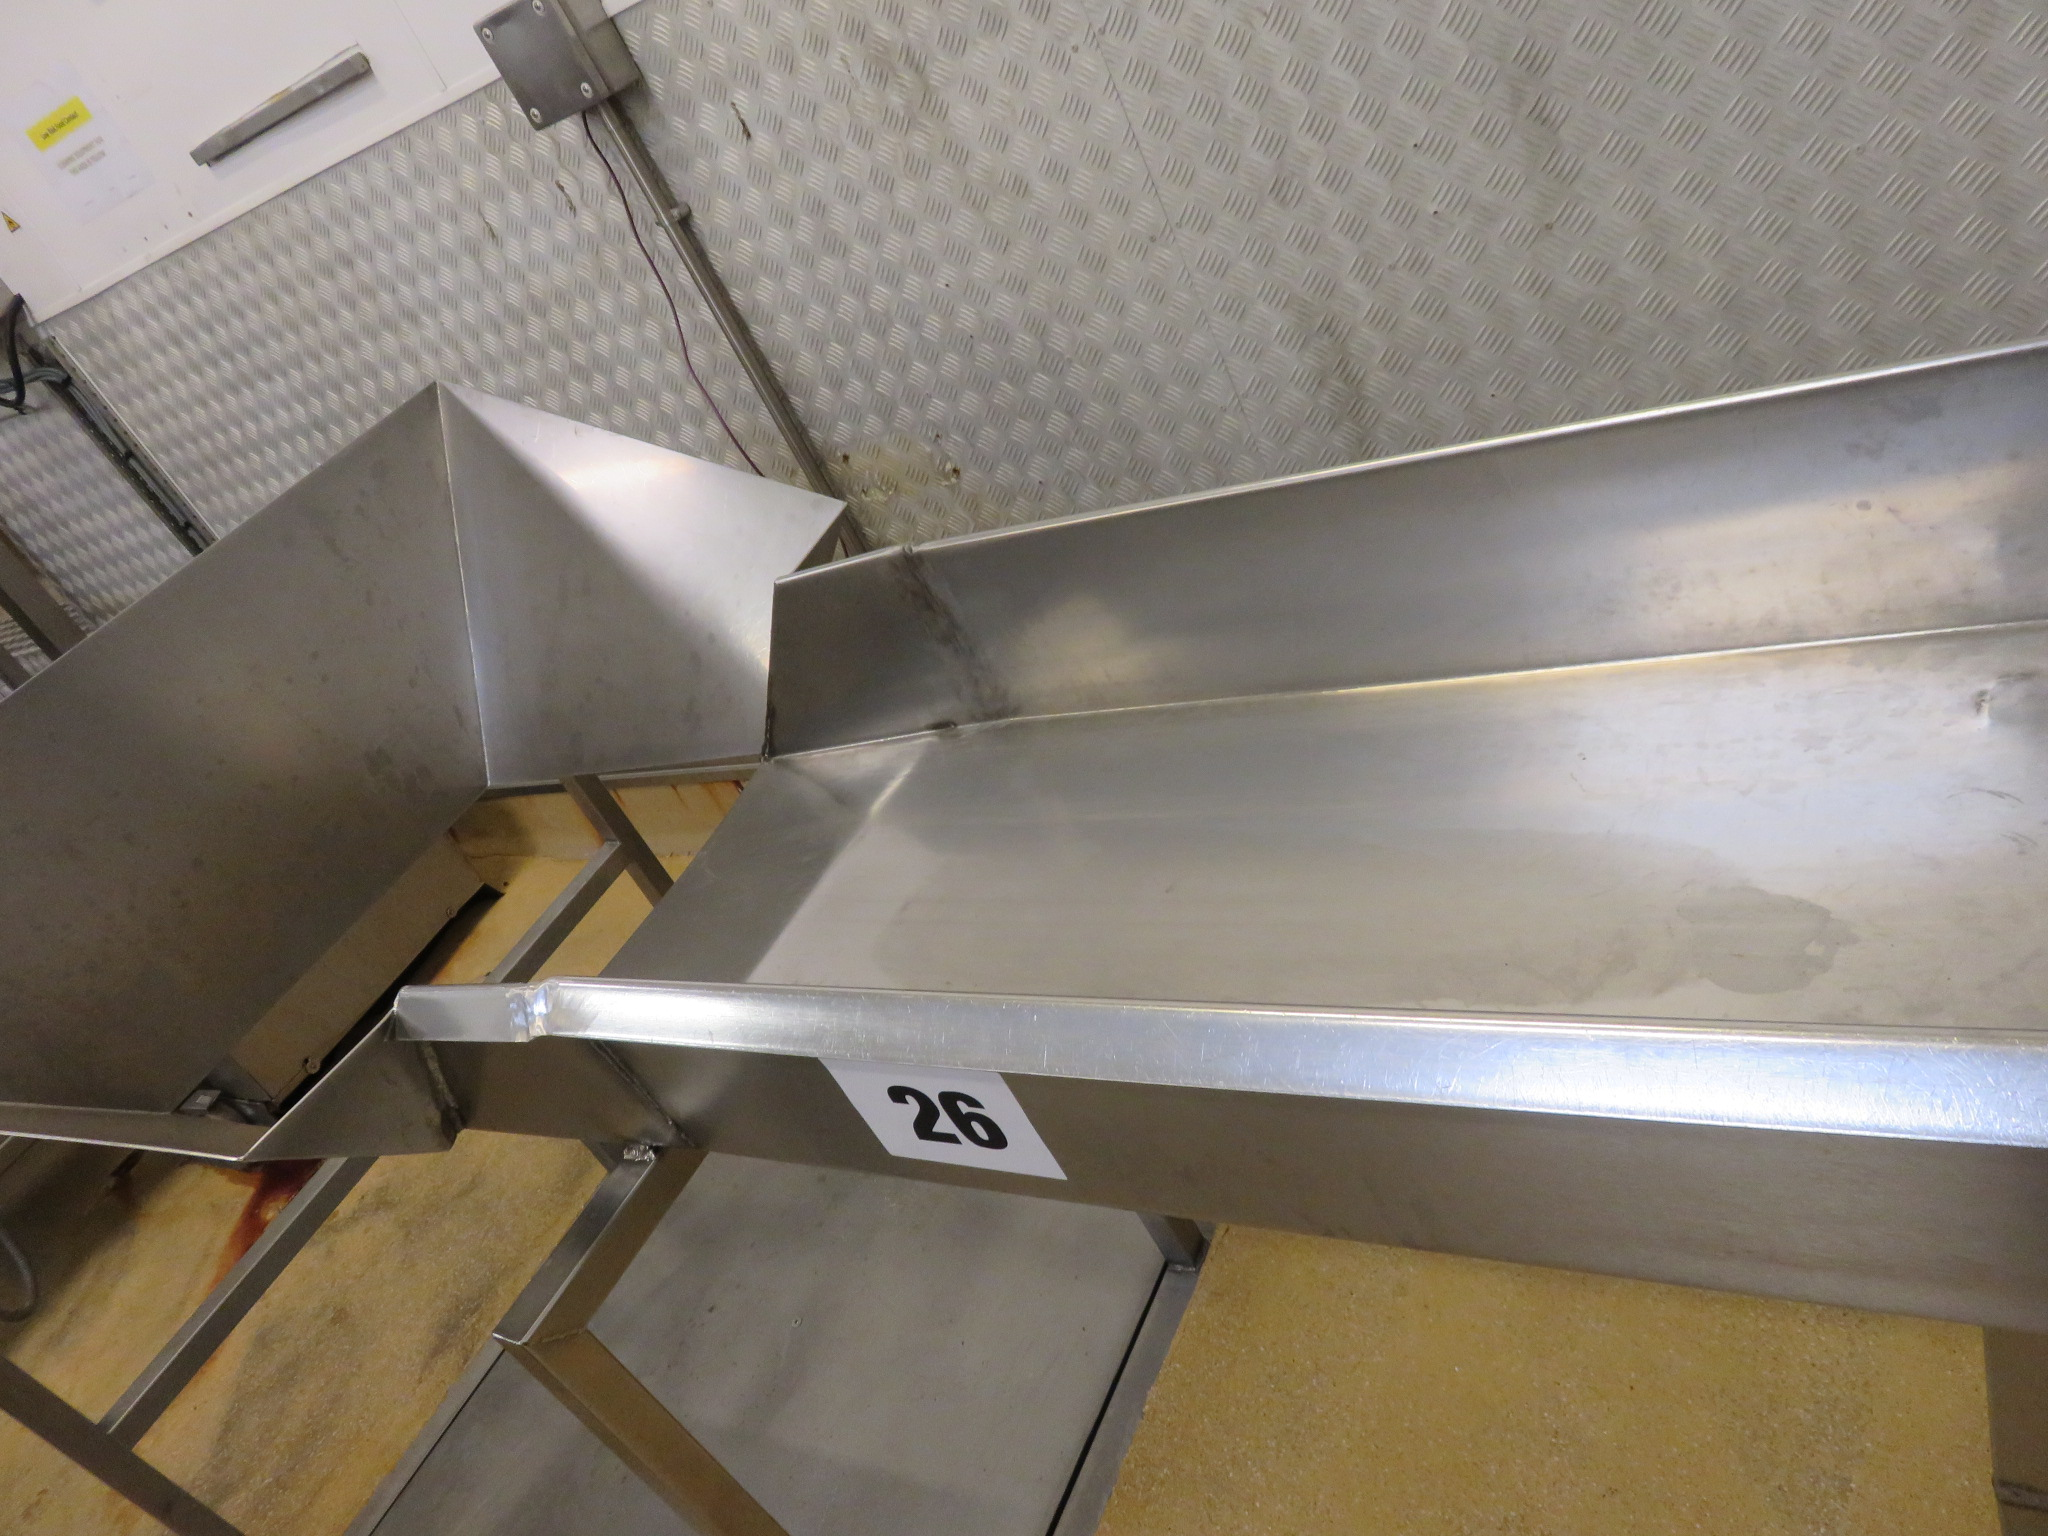 Lot 26 - S/s Sorting Table 2200 mm x 1100 mm. Lift out £20